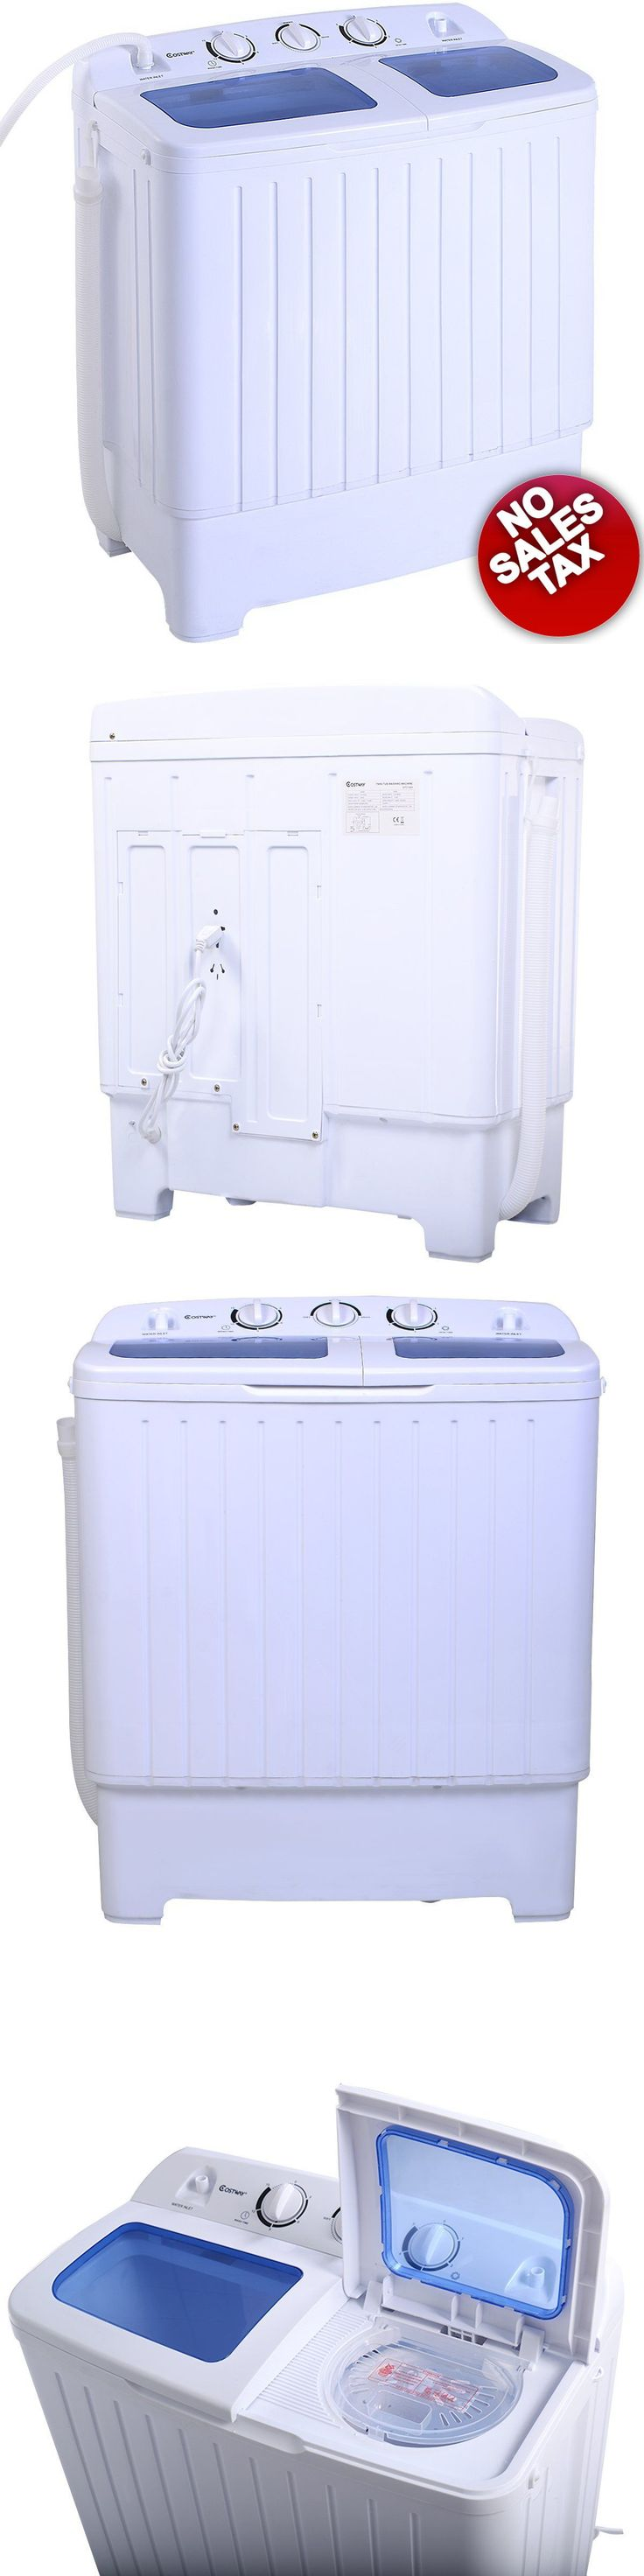 Mini Clothes Washer The 25 Best Rv Washer Dryer Ideas On Pinterest Decorating An Rv